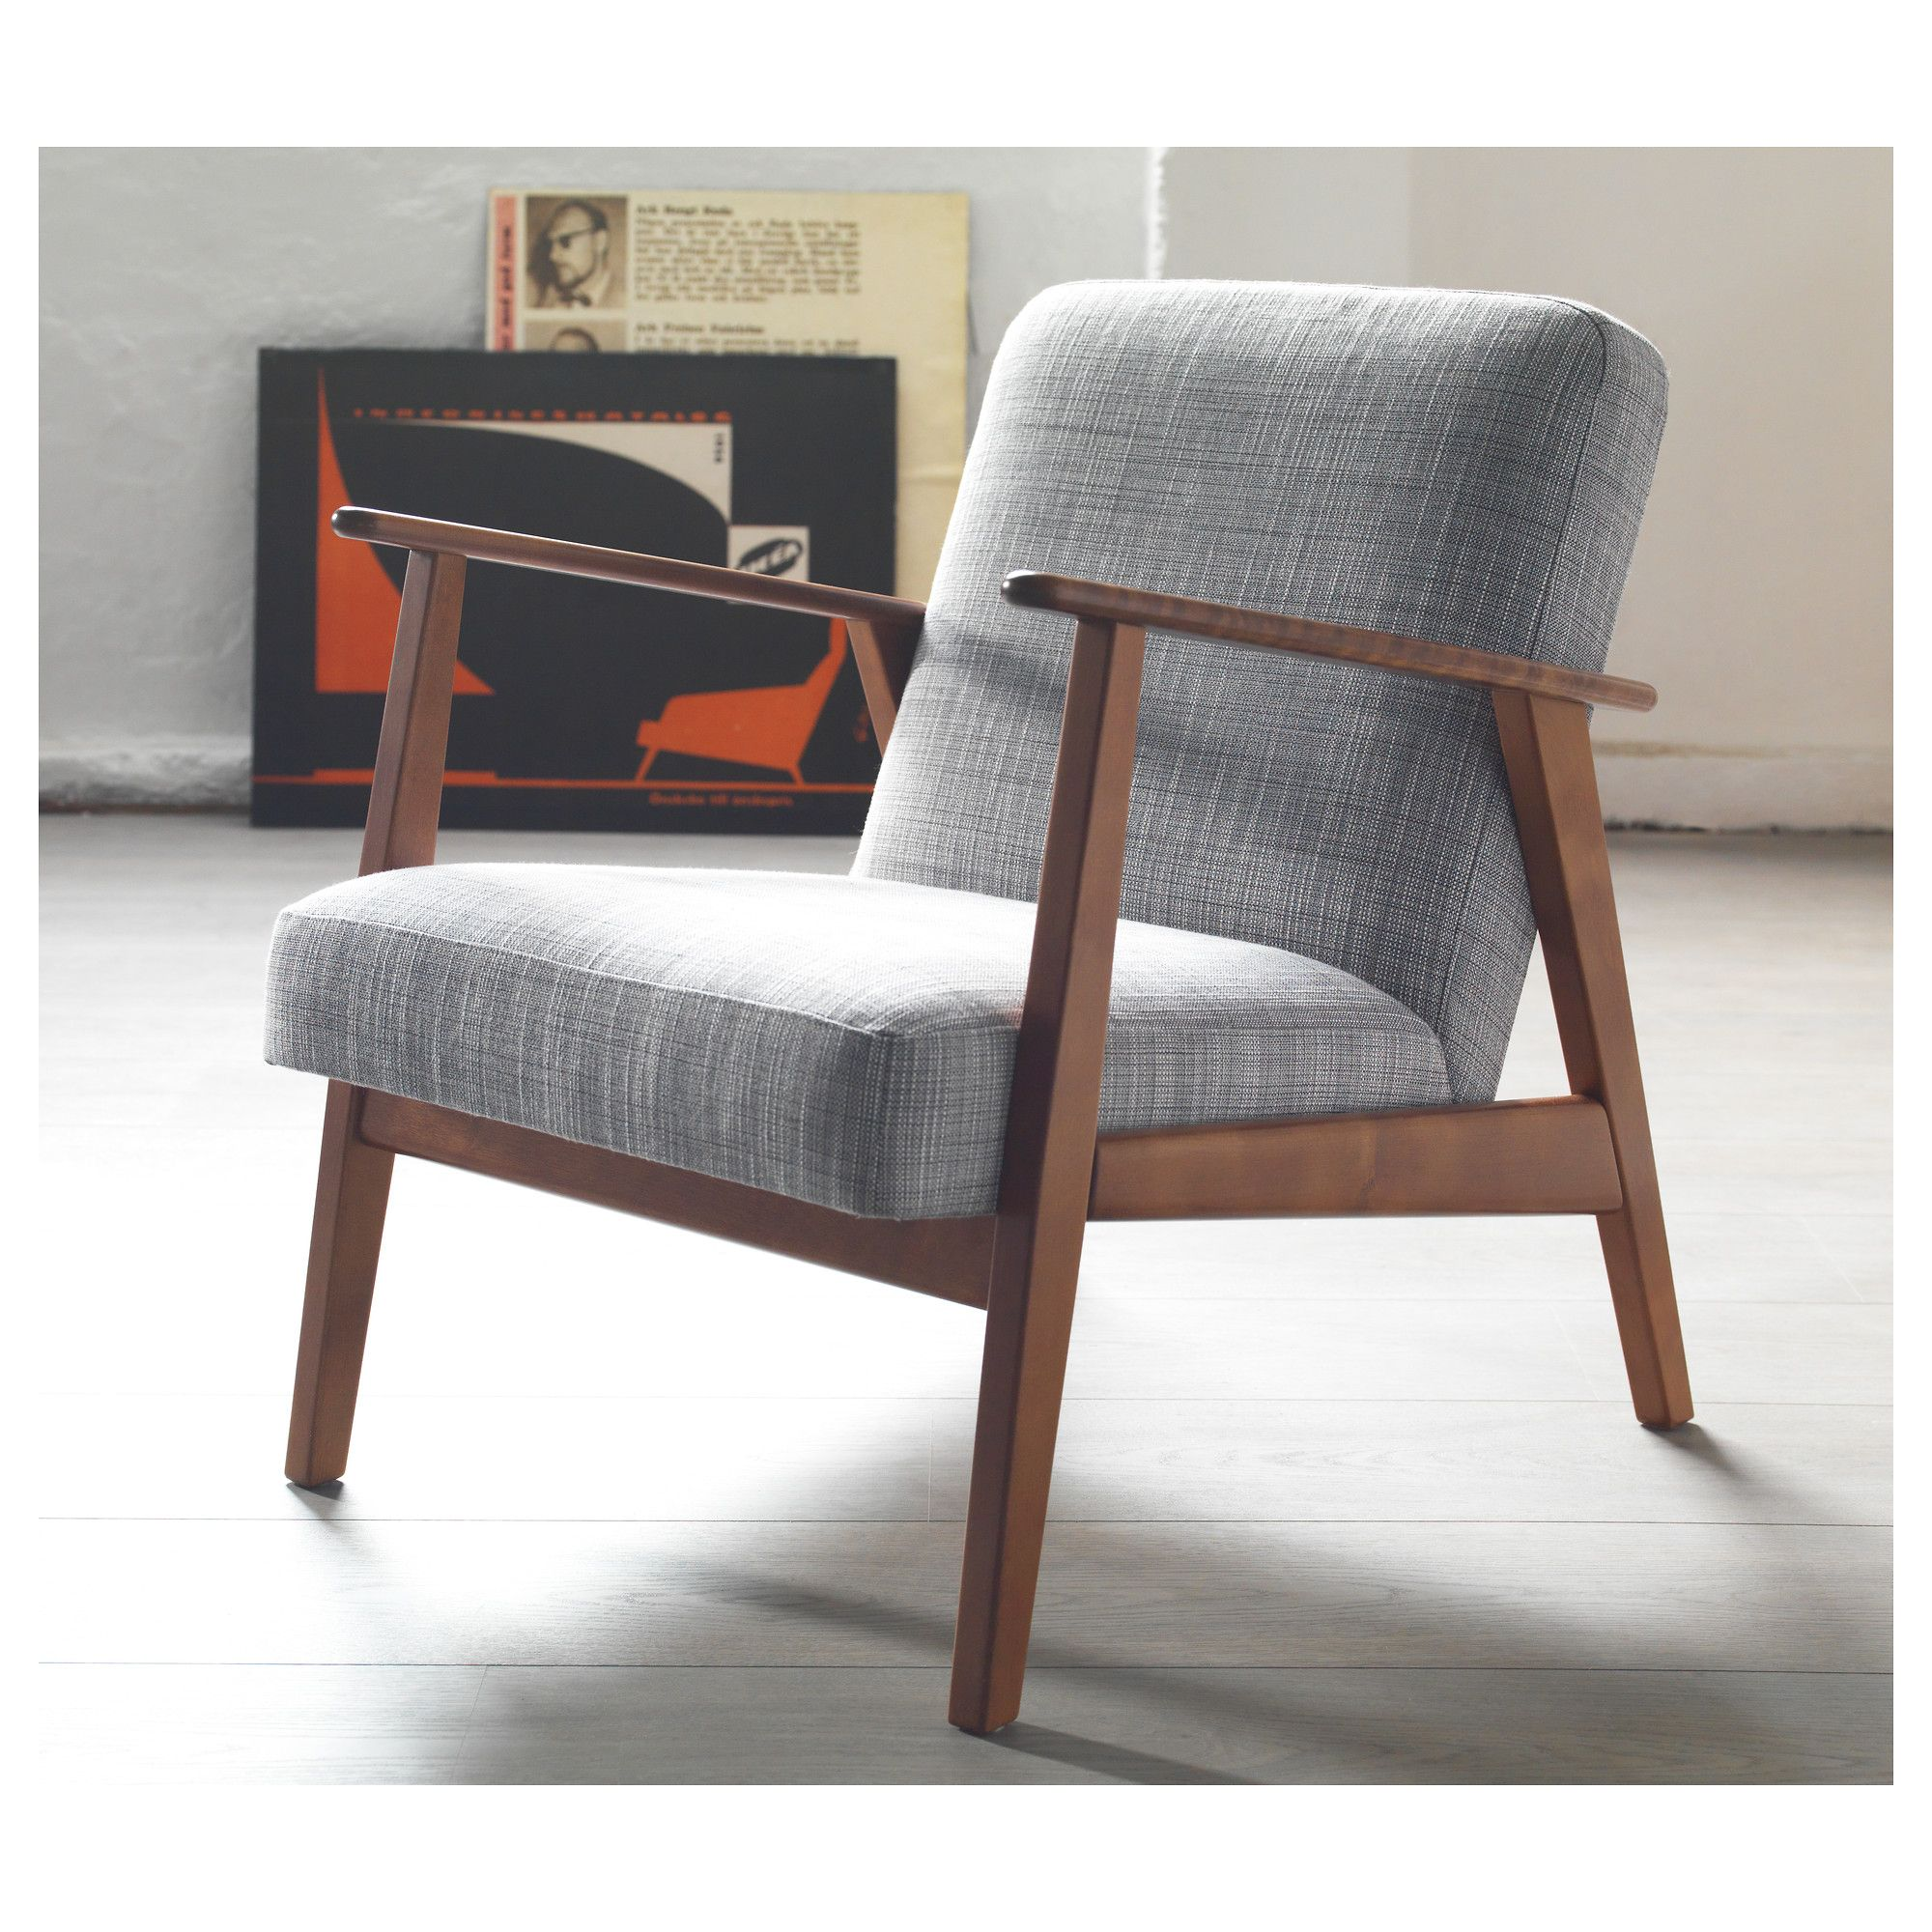 Vintage Ikea Lounge Chair EkenÄset Armchair Isunda Grey Chairs Ikea Armchair